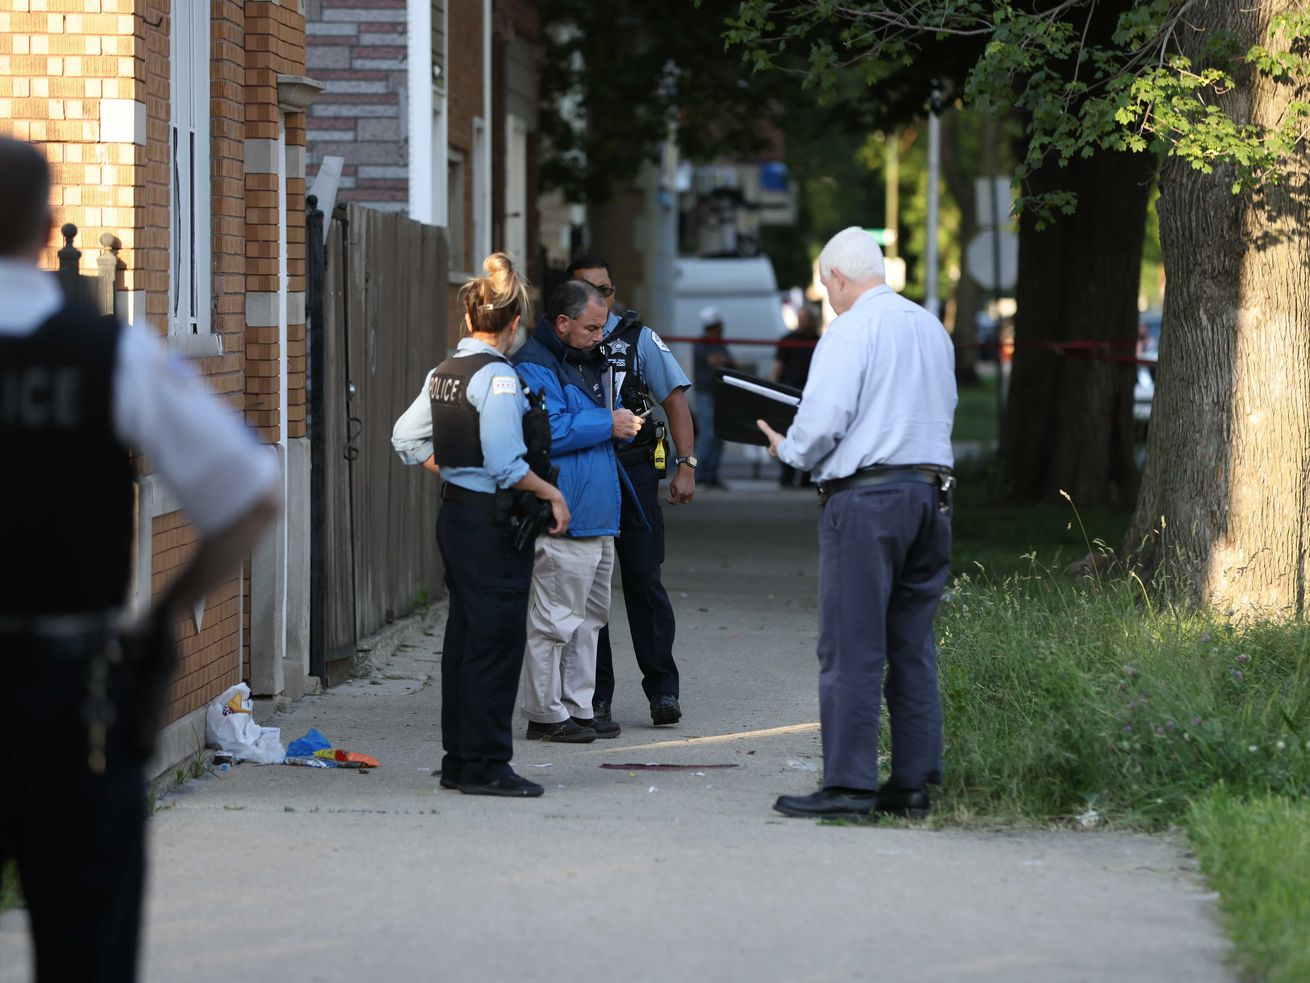 A 14-year-old girl was shot June 2, 2021, in Back of the Yards.